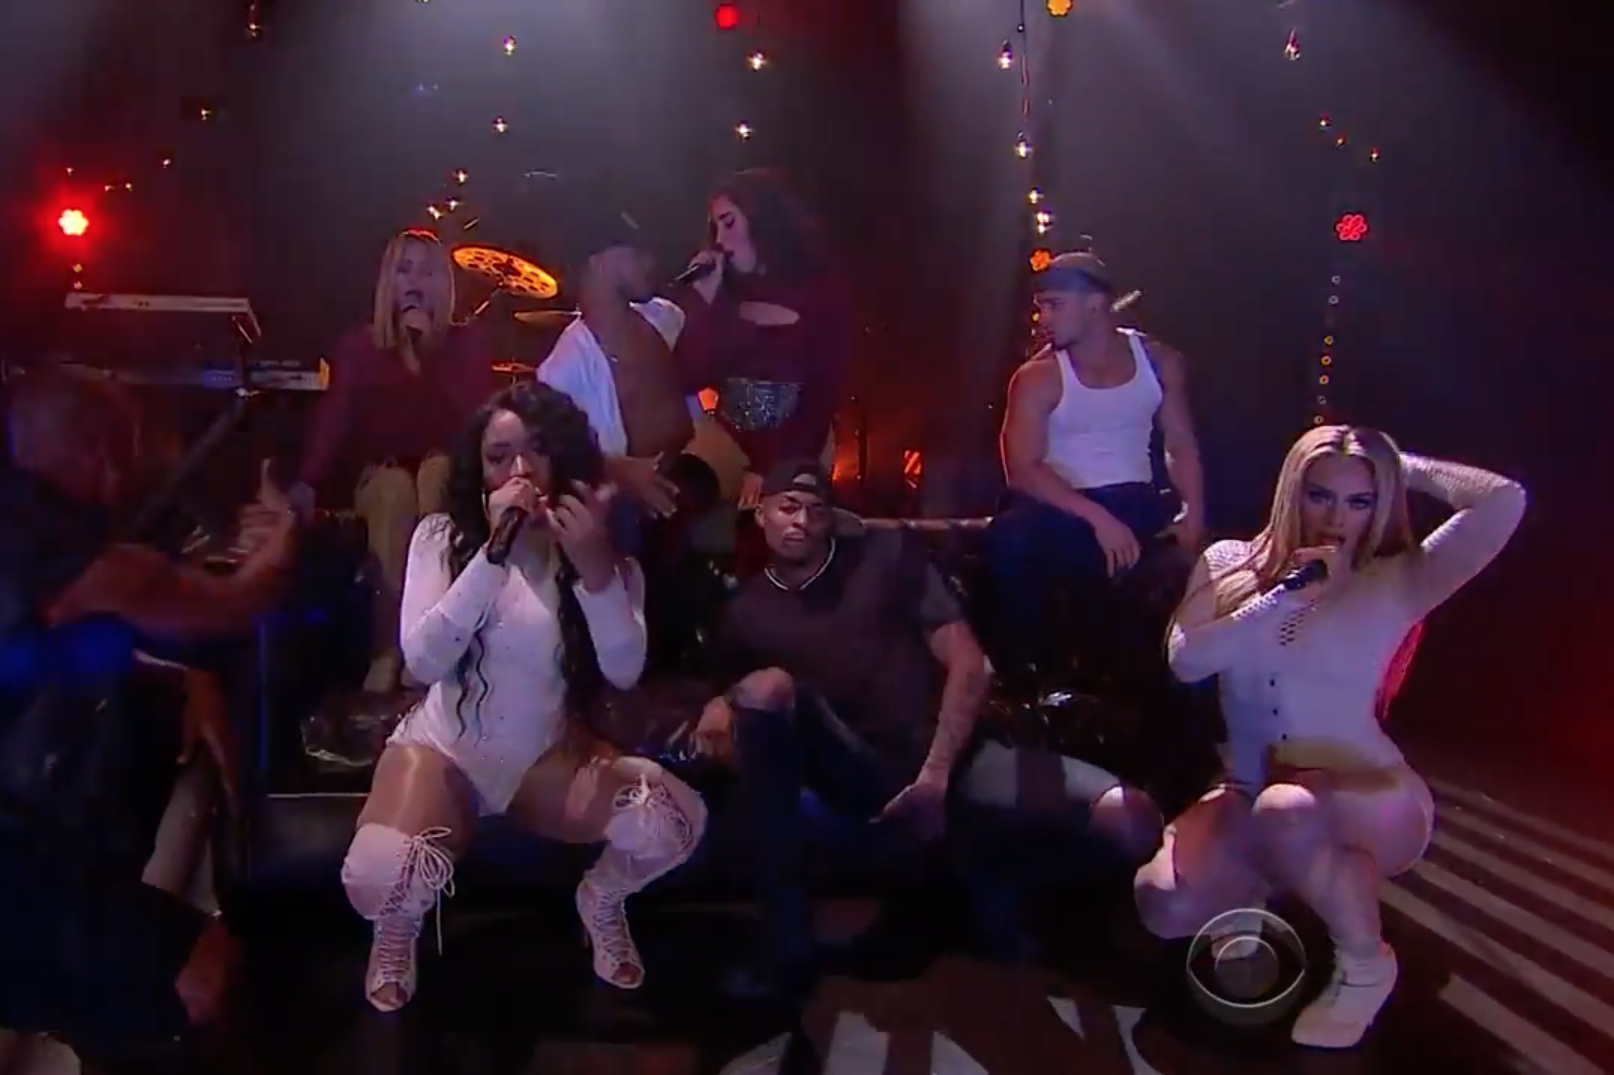 fifth-harmony-he-like-that-late-late-show-james-corden-video-1505321218